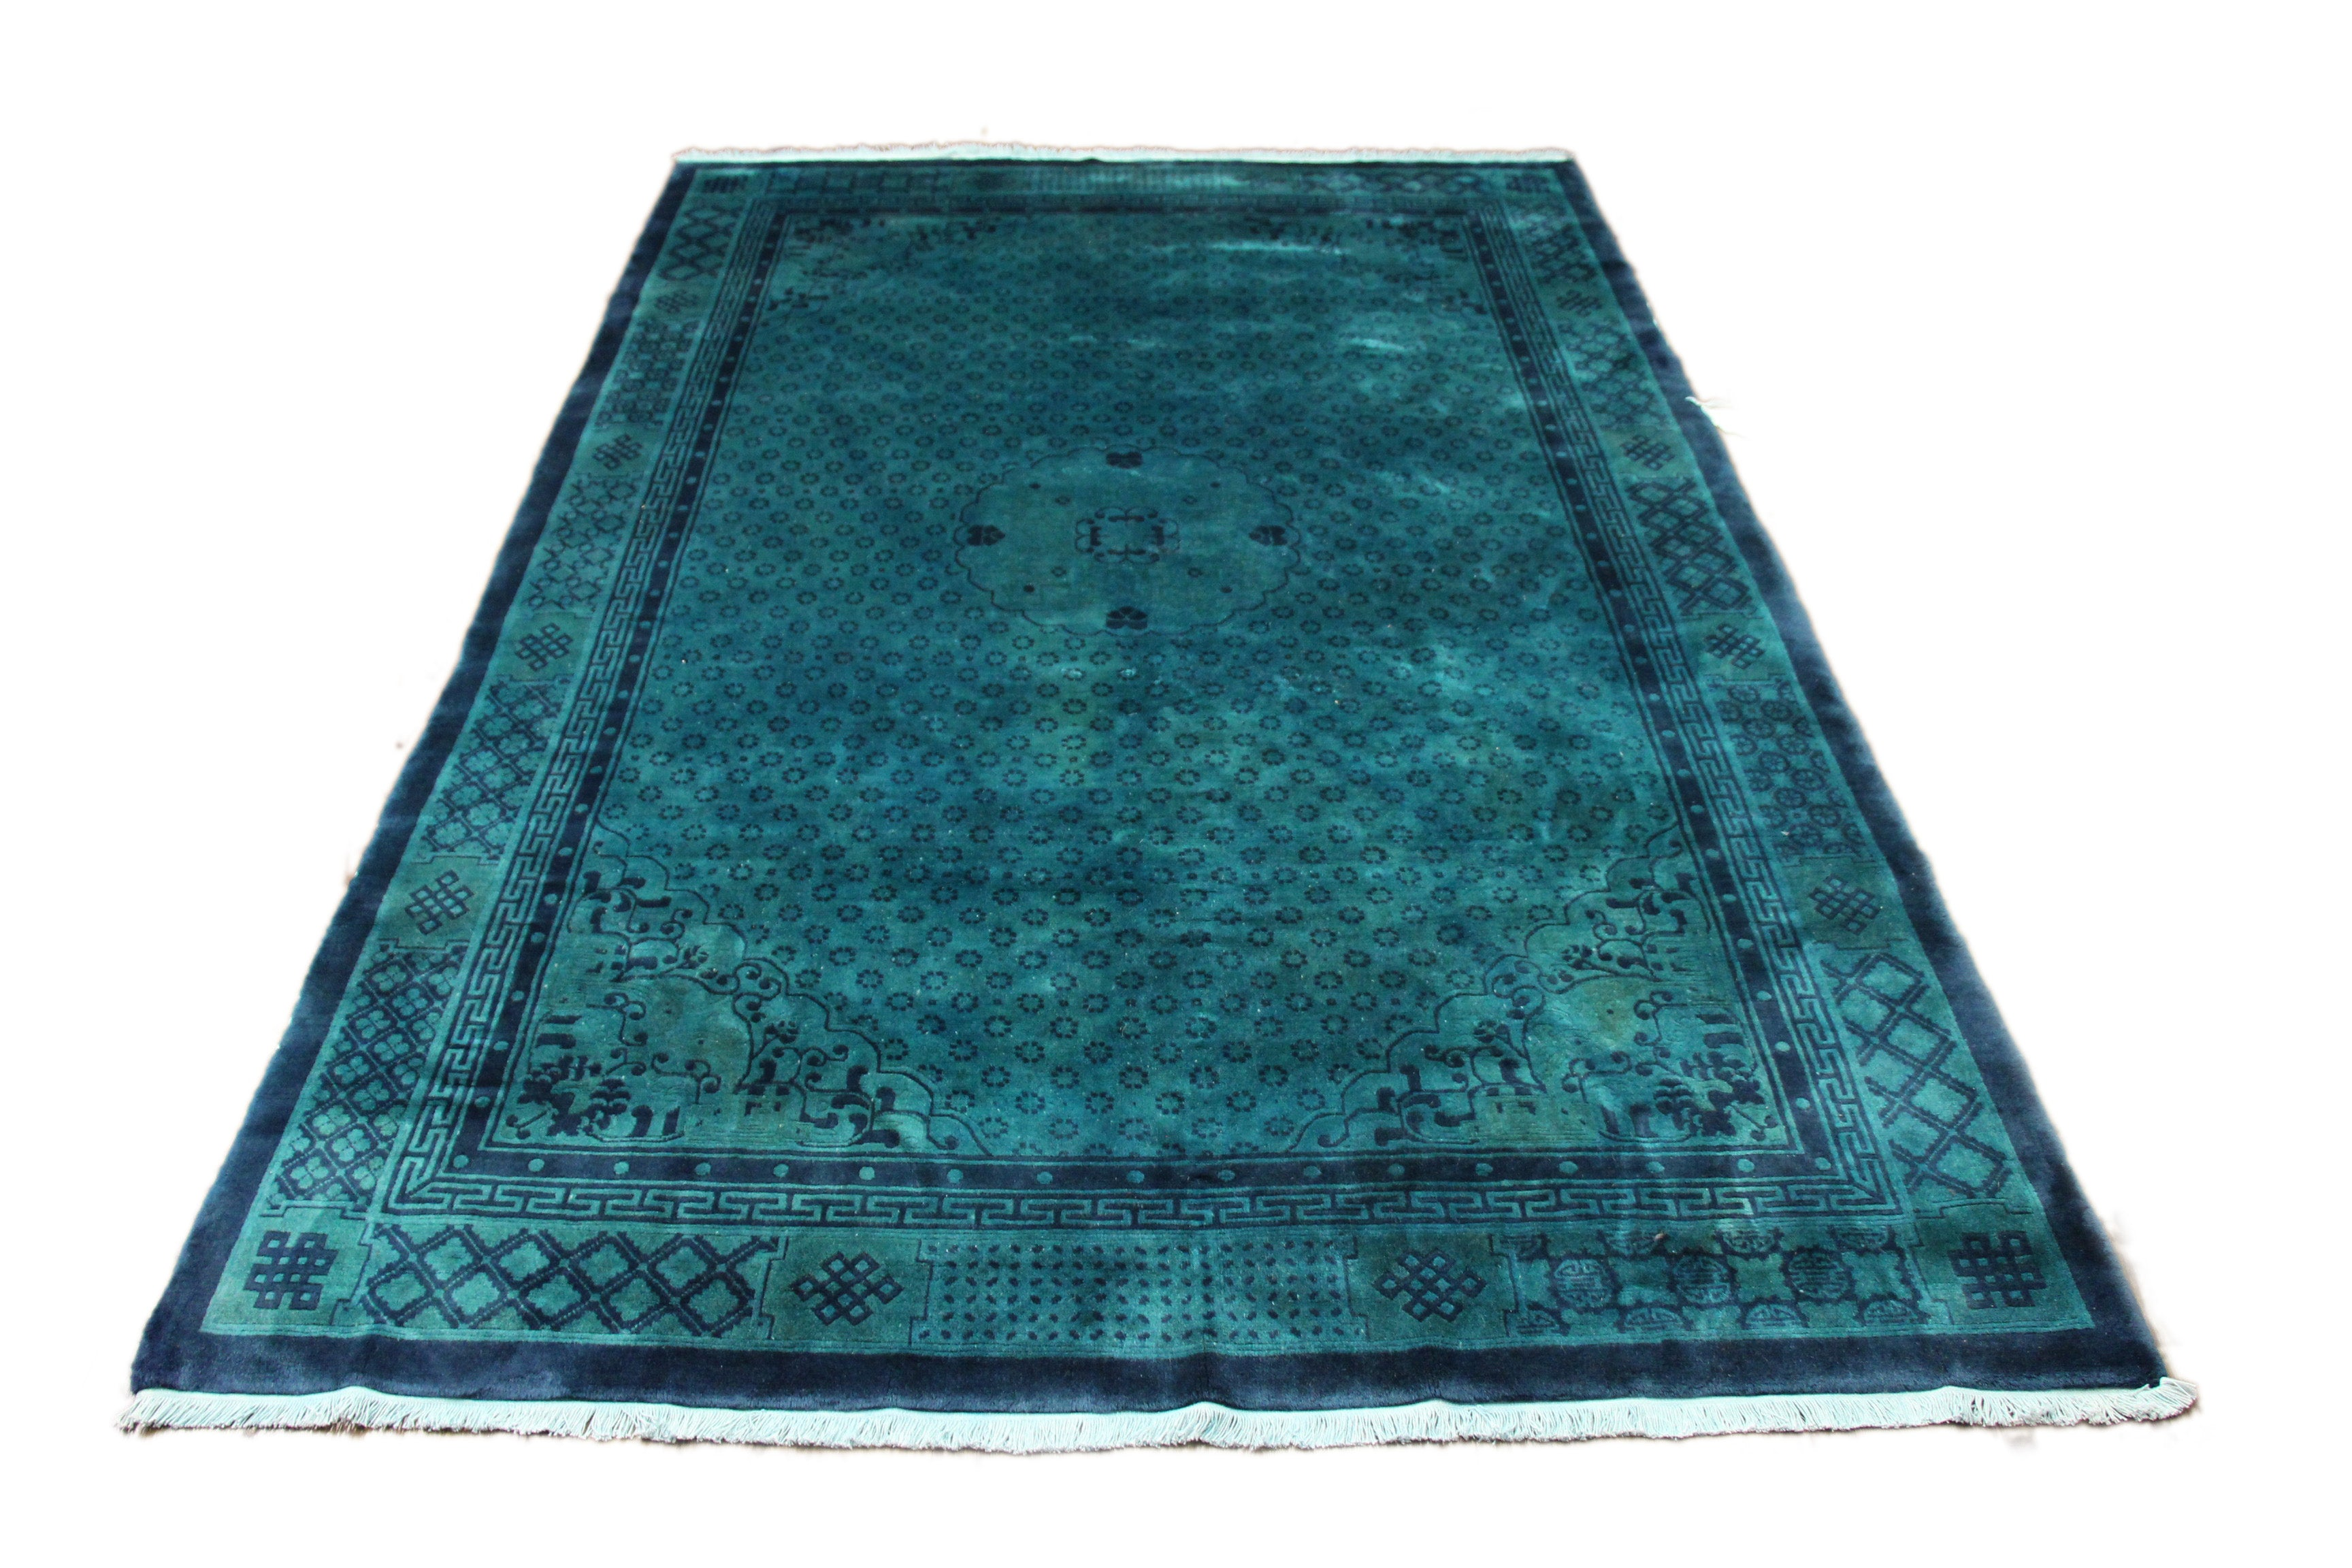 6x9 Teal Green Overdyed Chinese Deco Rug 2818 - west of hudson